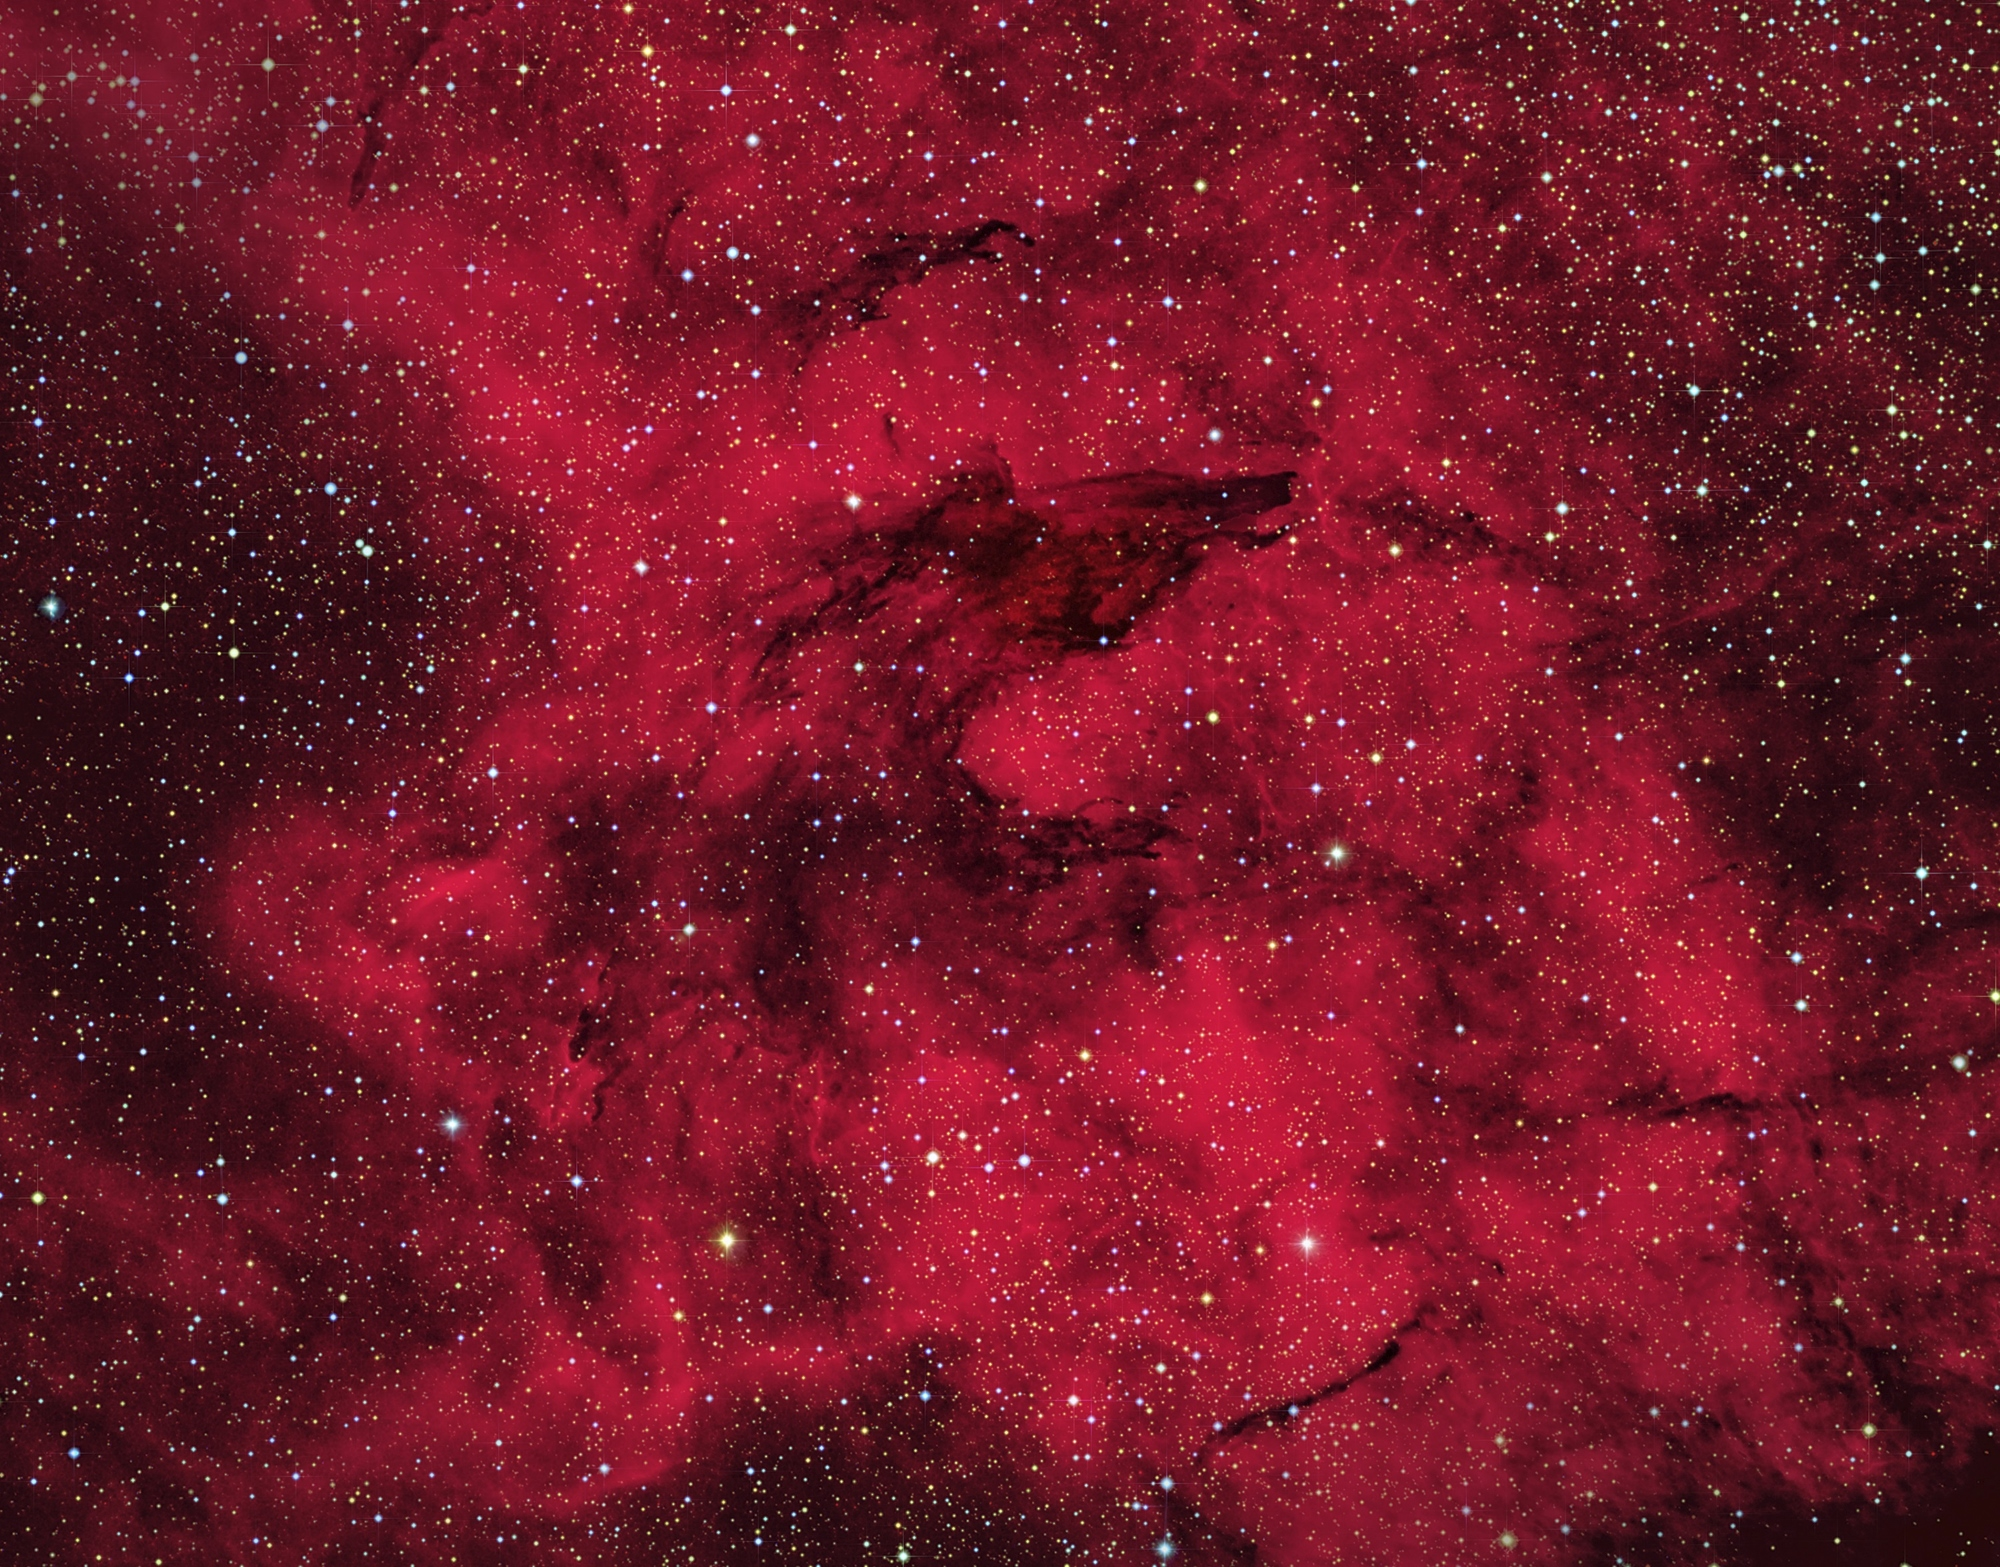 The Wolf Nebula SL-17 by Andrew Campbell   Insight Investment Astronomy Photographer of the Year 2019   Stars and Nebulae